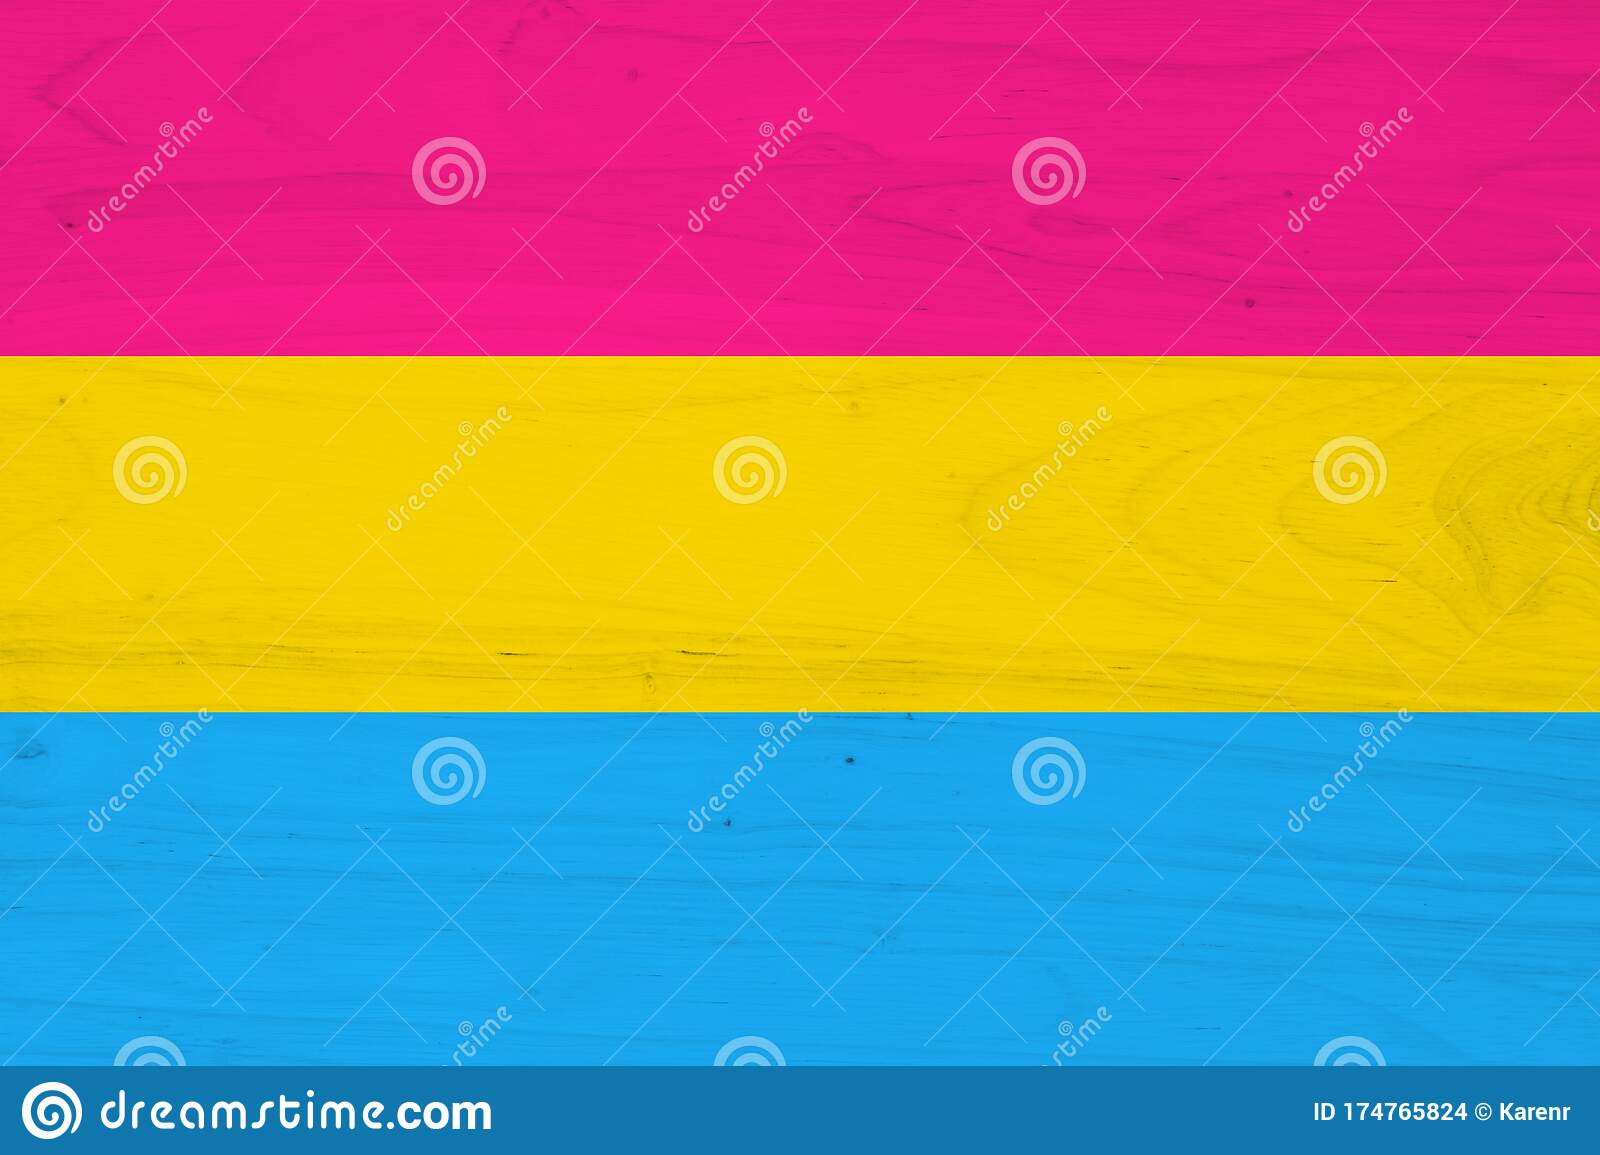 A Pansexual Flag On With Wood Texture Stock Photo Image Of Texture Sexuality 174765824